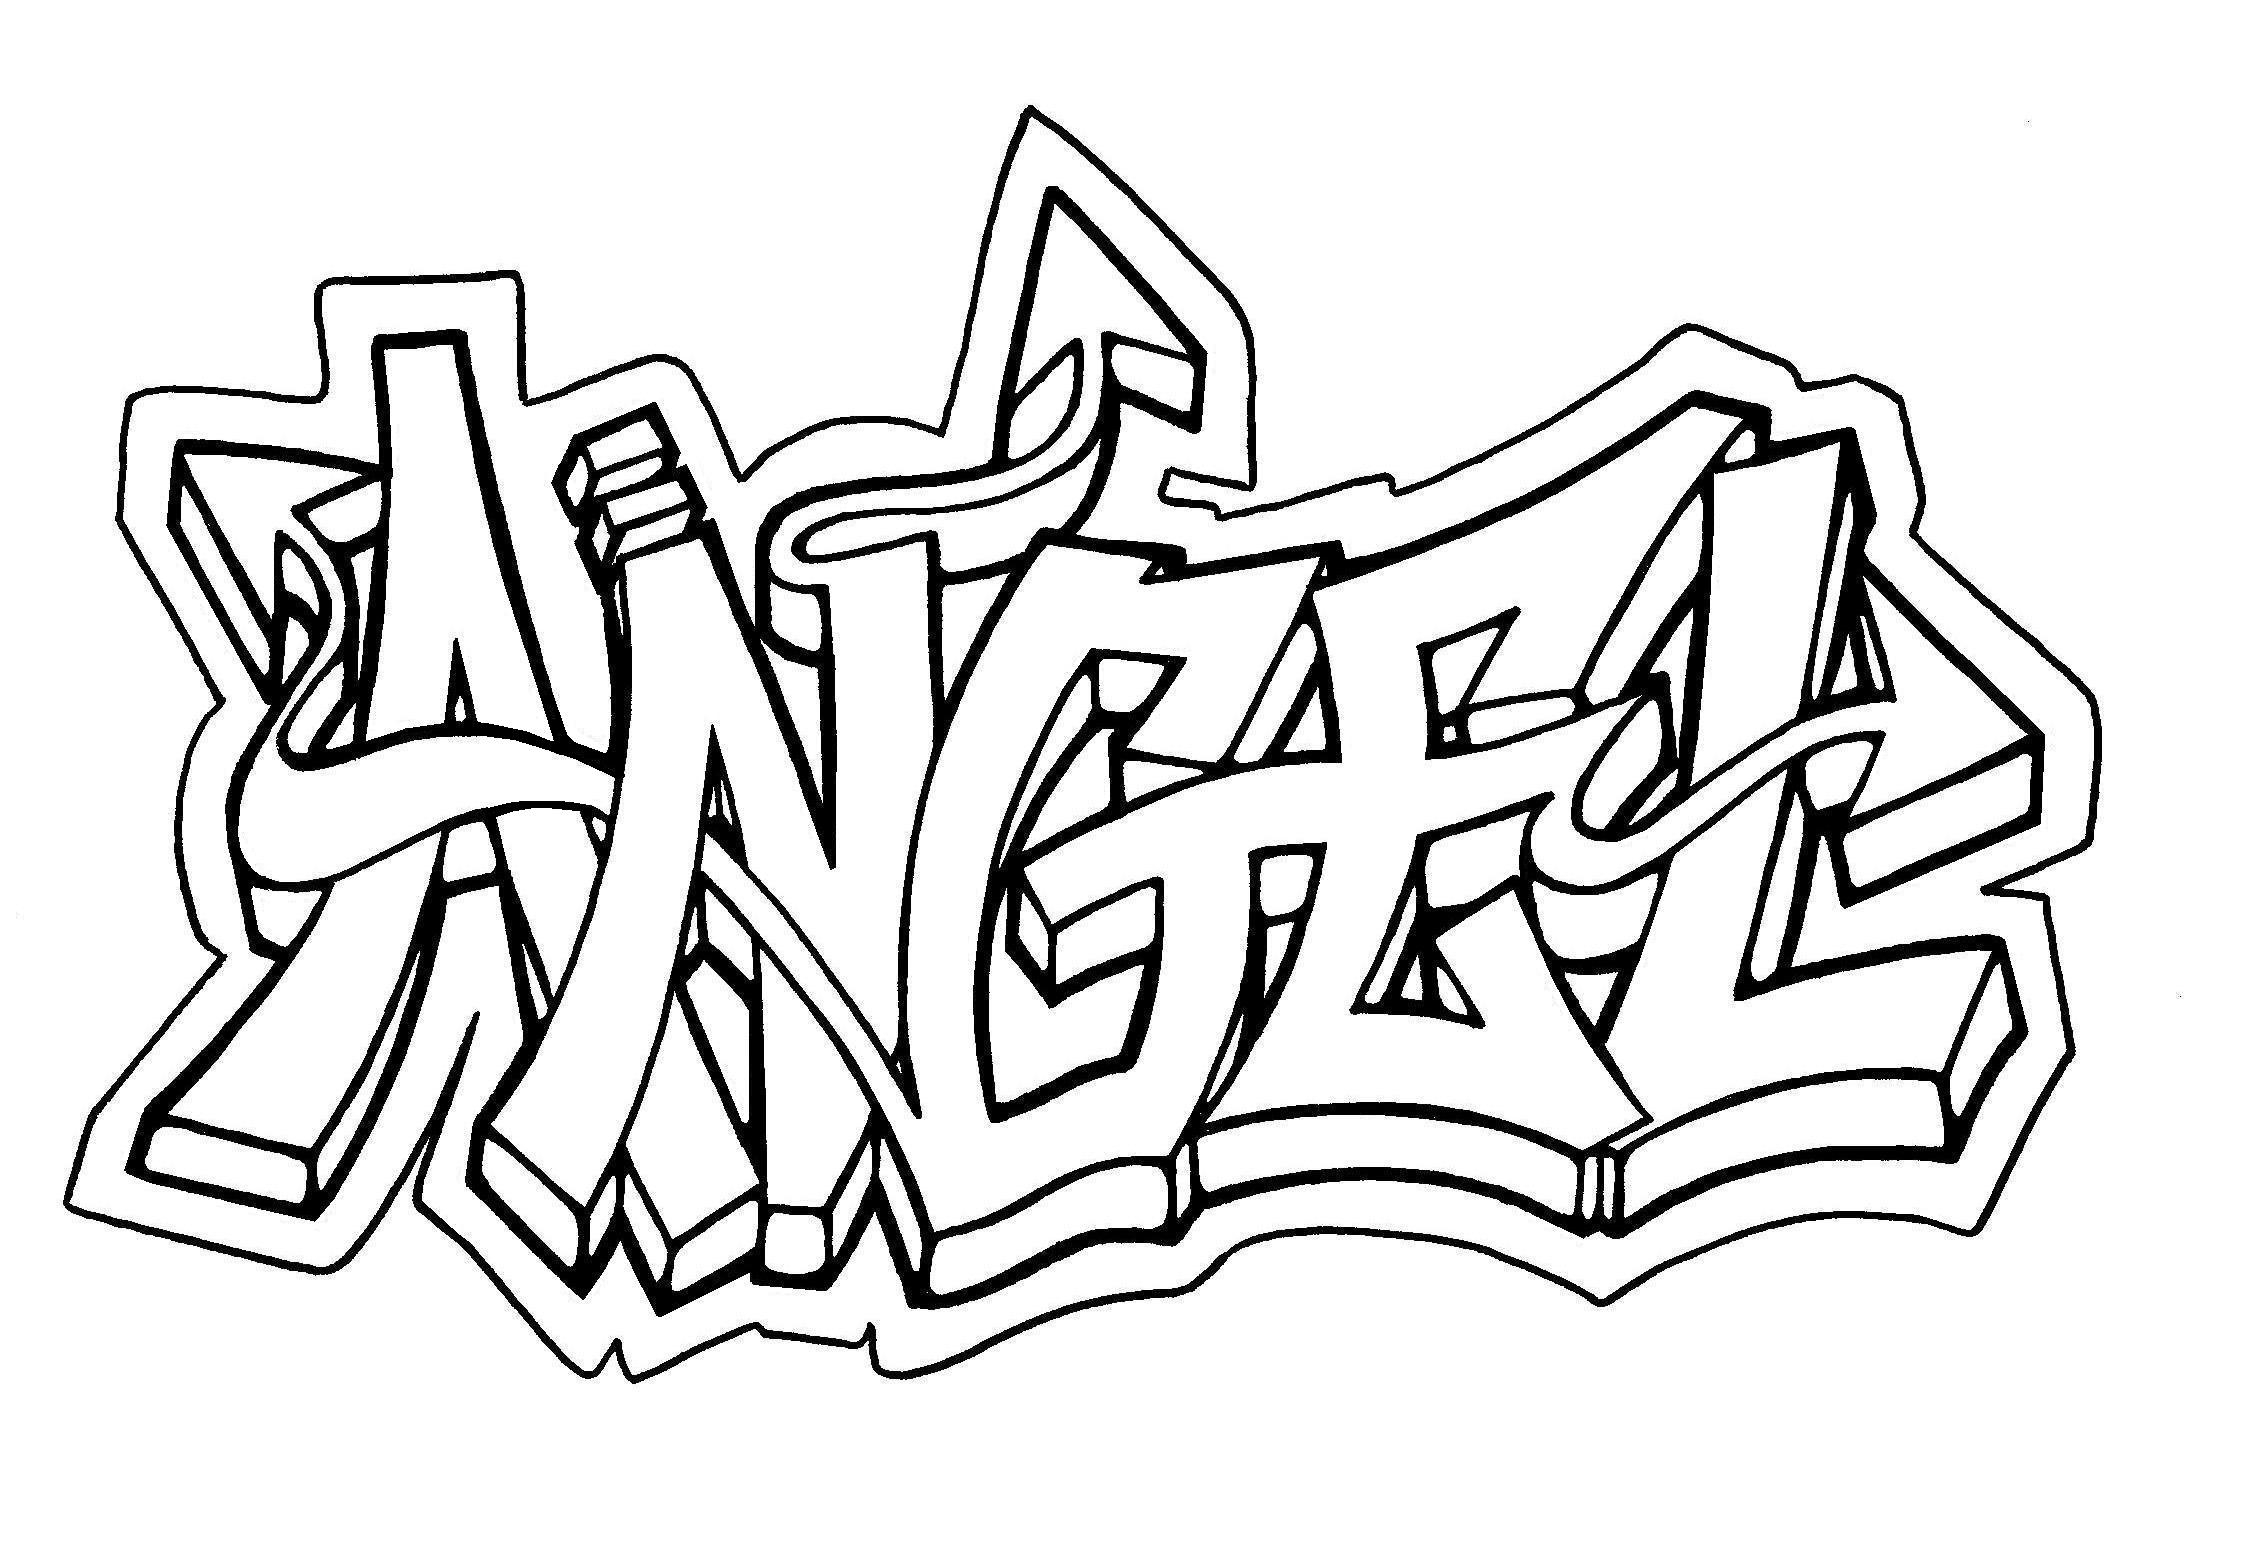 2247x1545 Drawings Of Graffiti Words 25 Best Images About Arted Graffiti